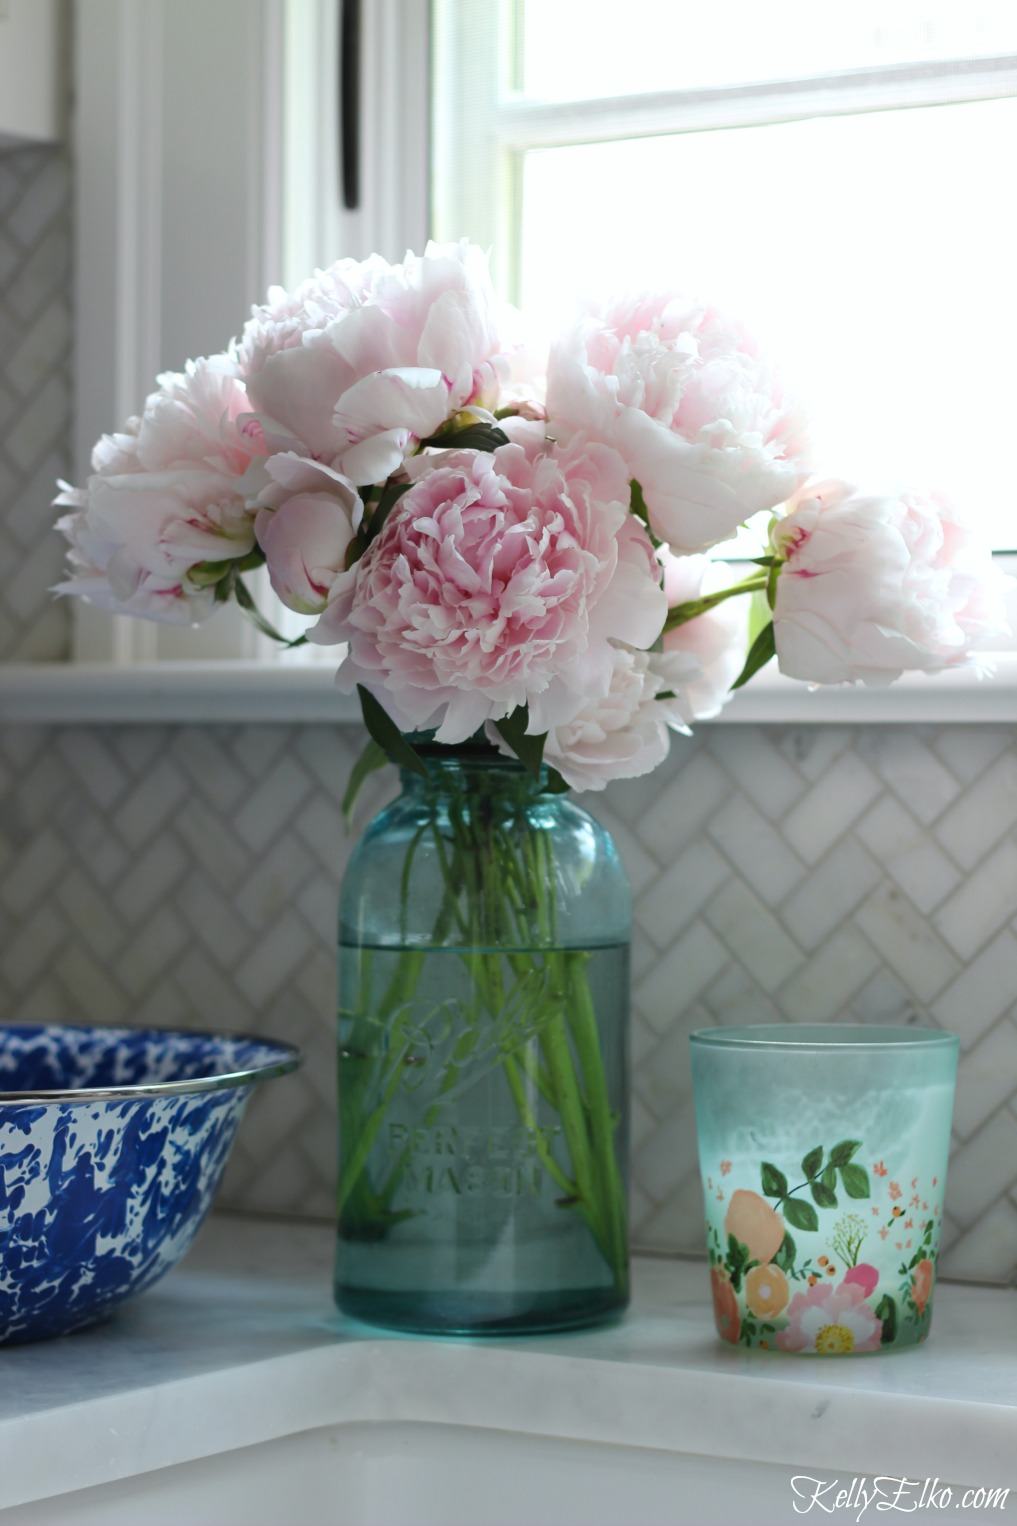 How to Make Peonies Last Longer - love these great tips for making sure your peonies always look in prime condition and love this bouquet of pink peonies in a vintage blue mason jar kellyelko.com #peonies #gardeningtips #gardens #gardening #perennials